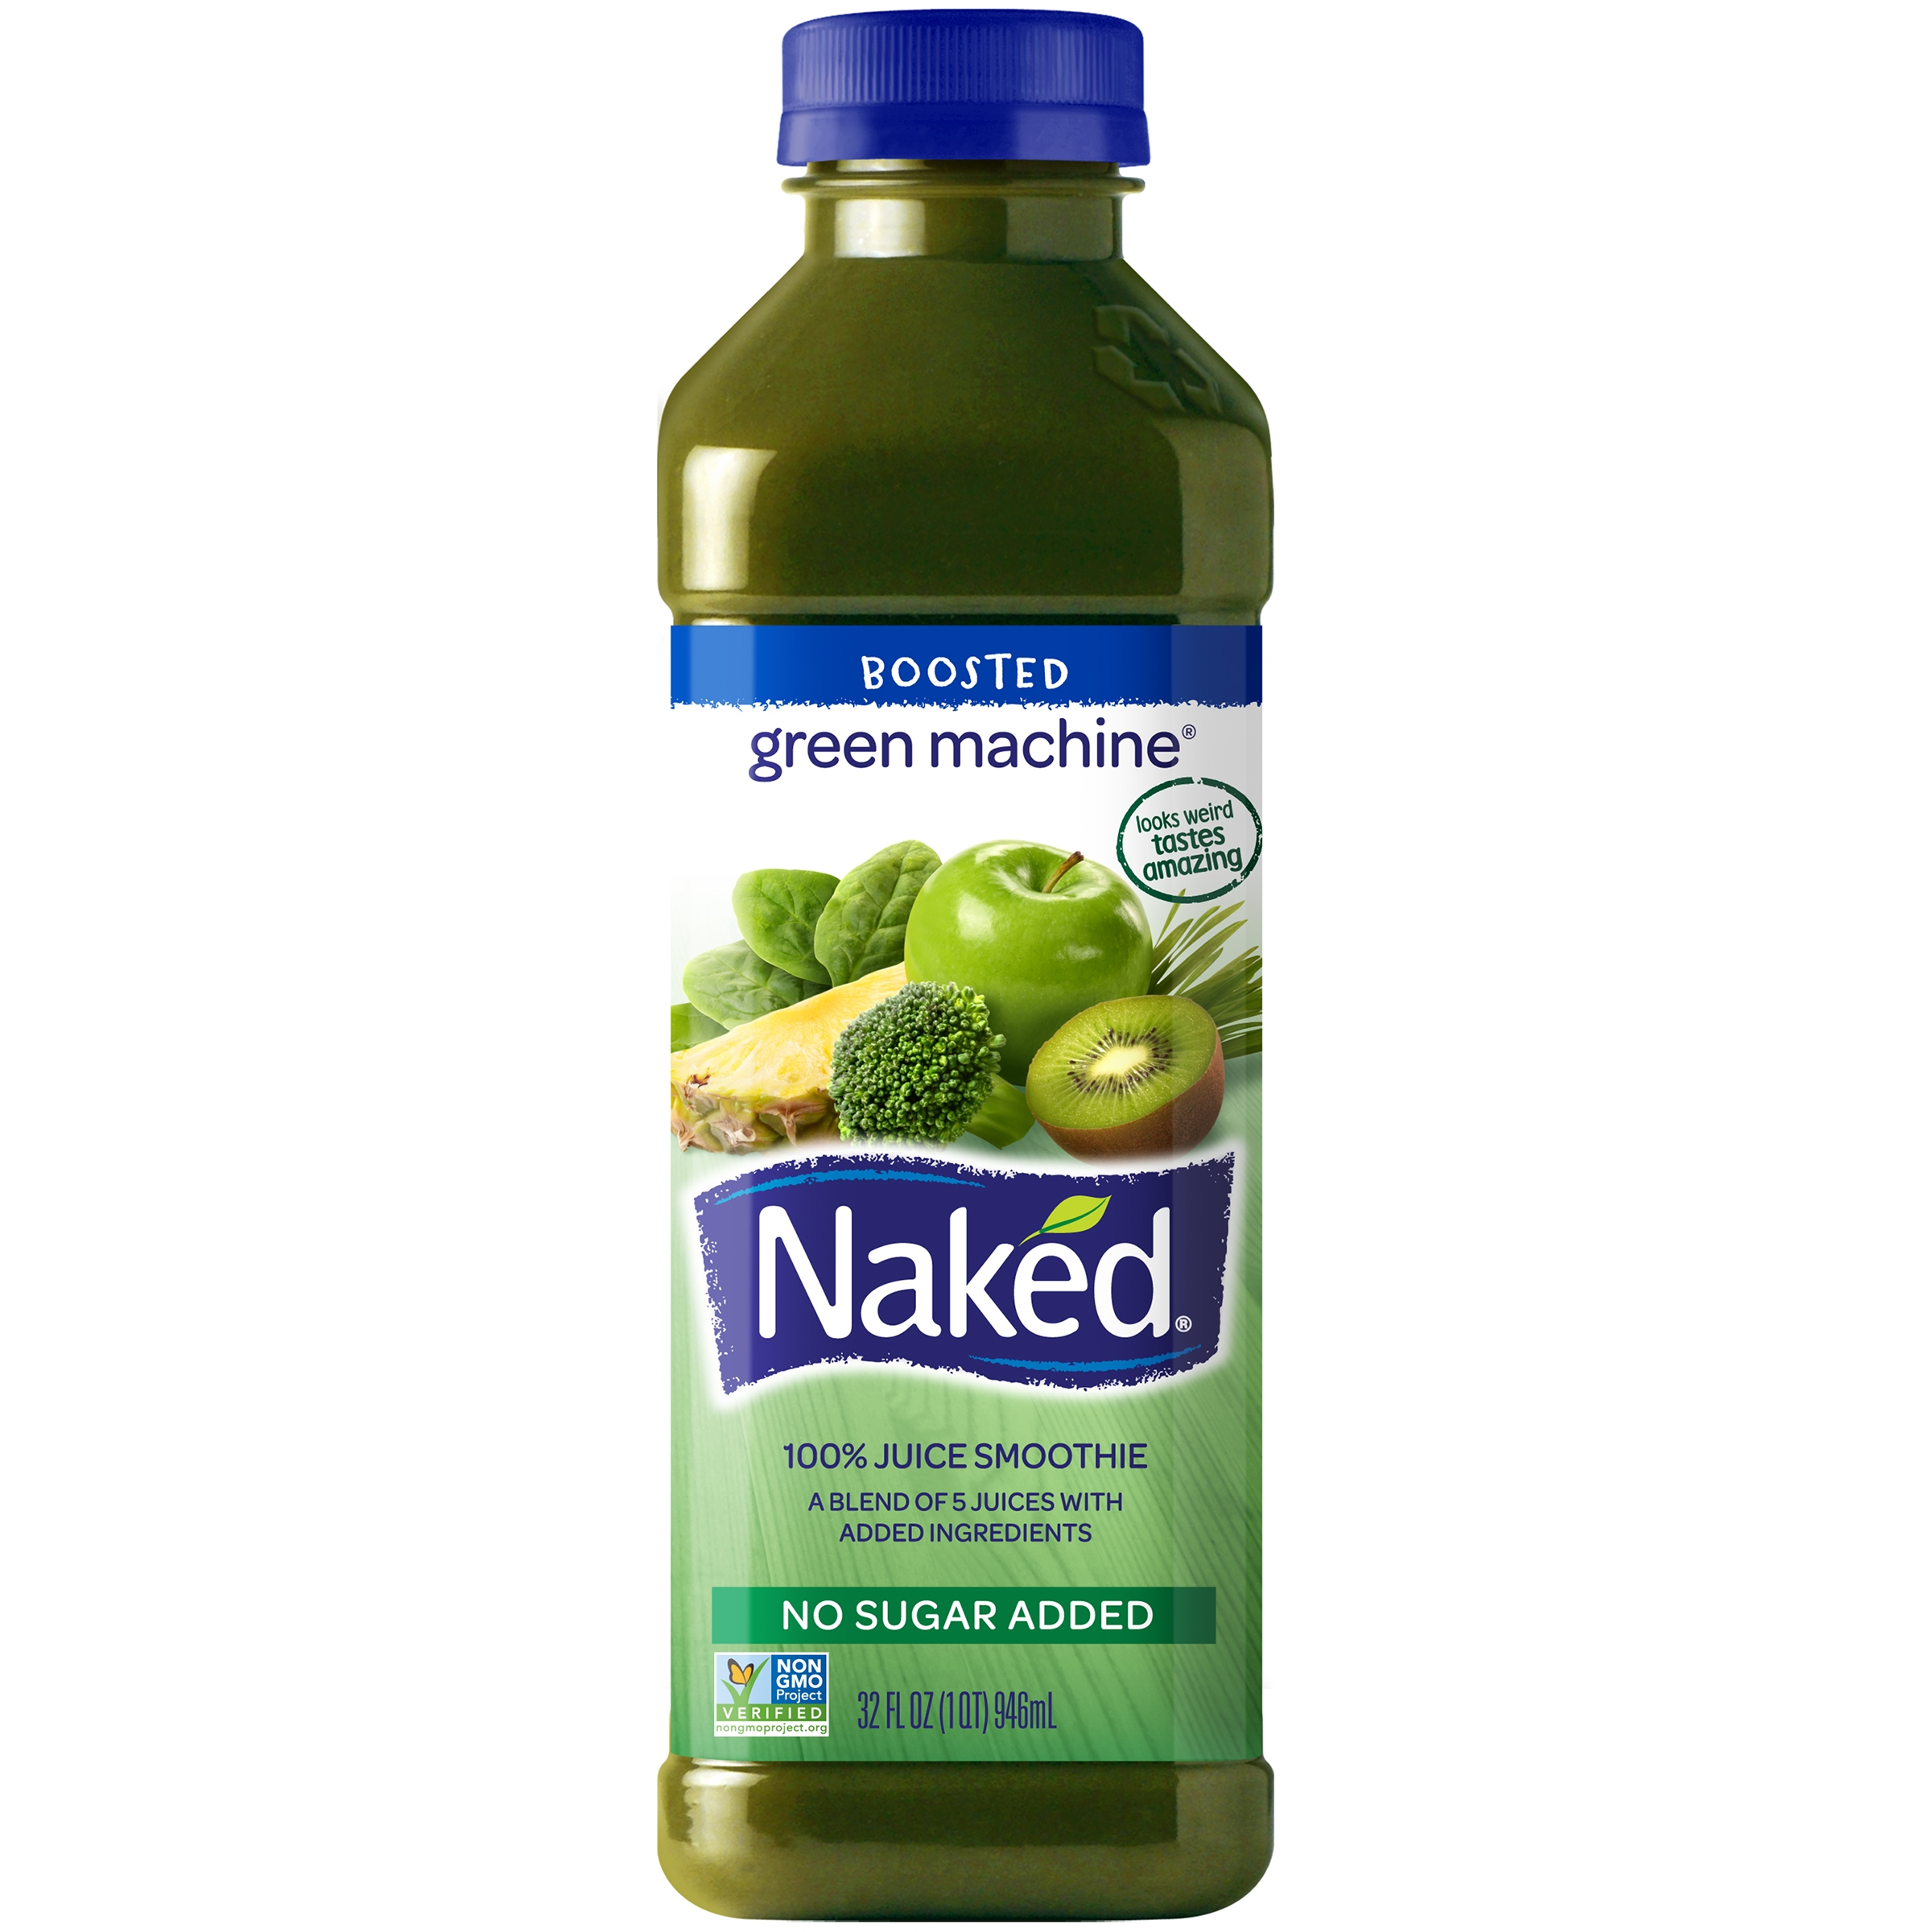 Naked Juice Boosted Smoothie Green Machine 32 Oz Bottle